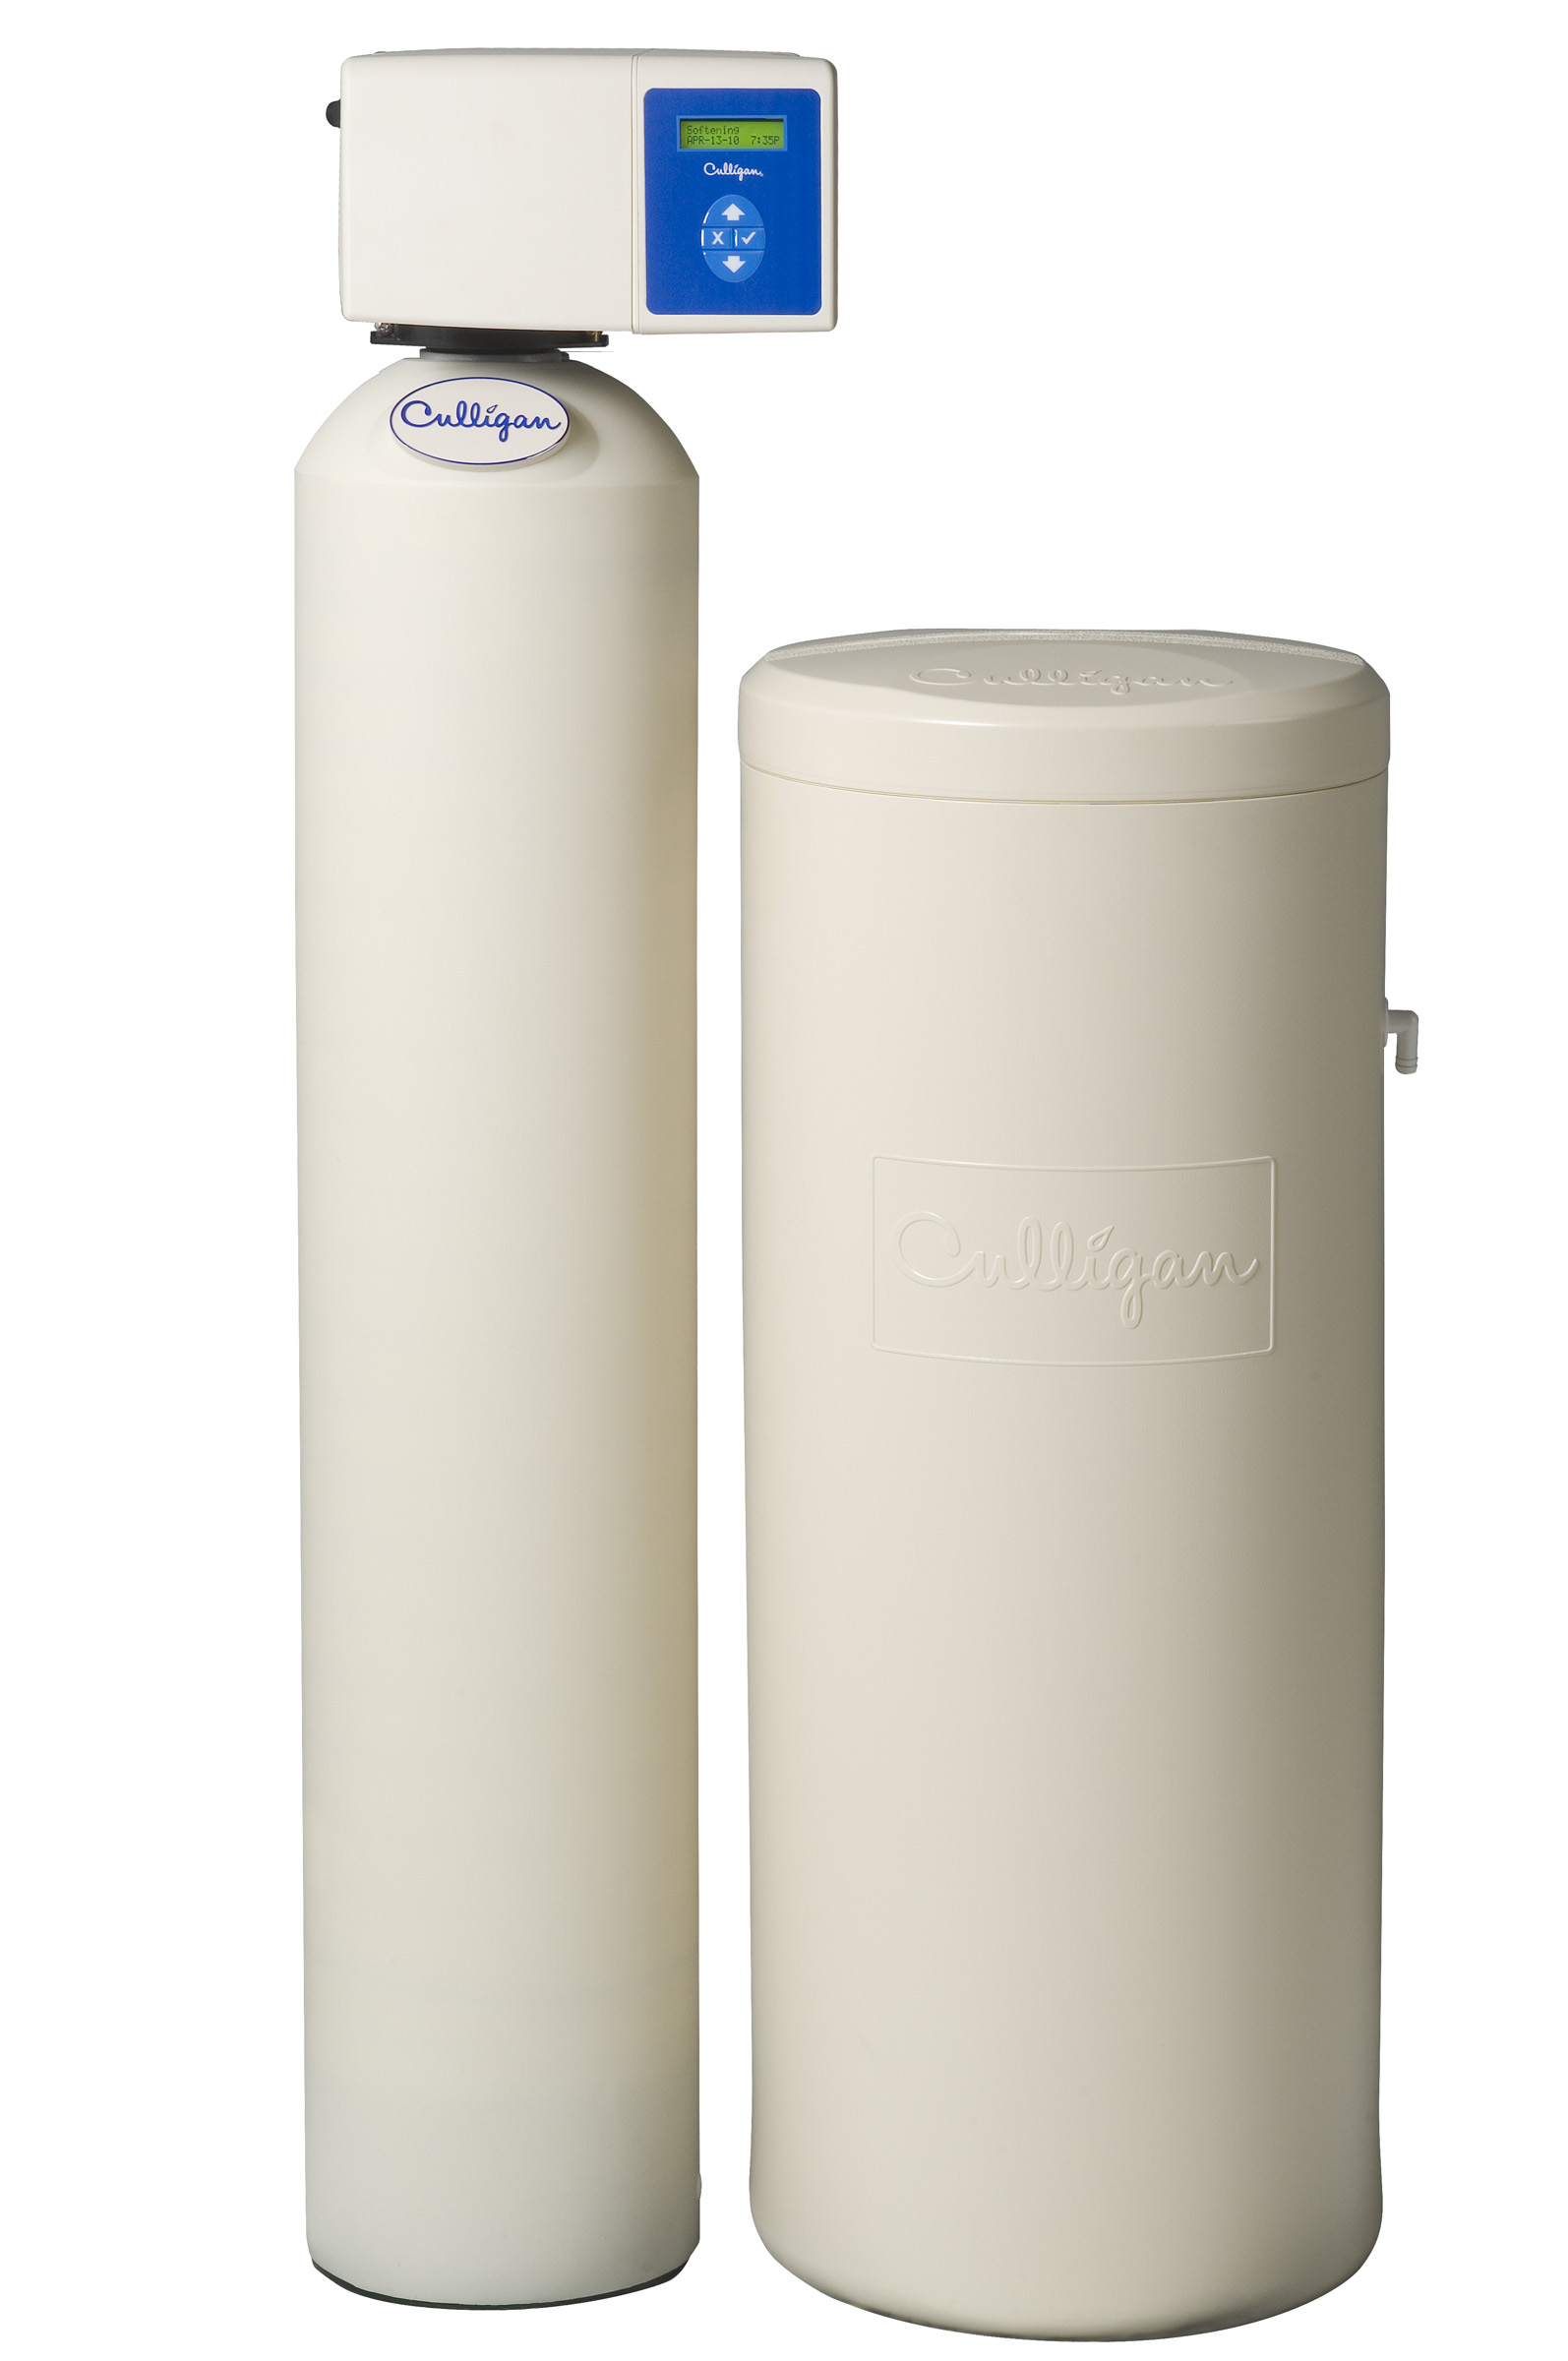 culligan whole house water filter. HE Softener Cleer Culligan Whole House Water Filter E